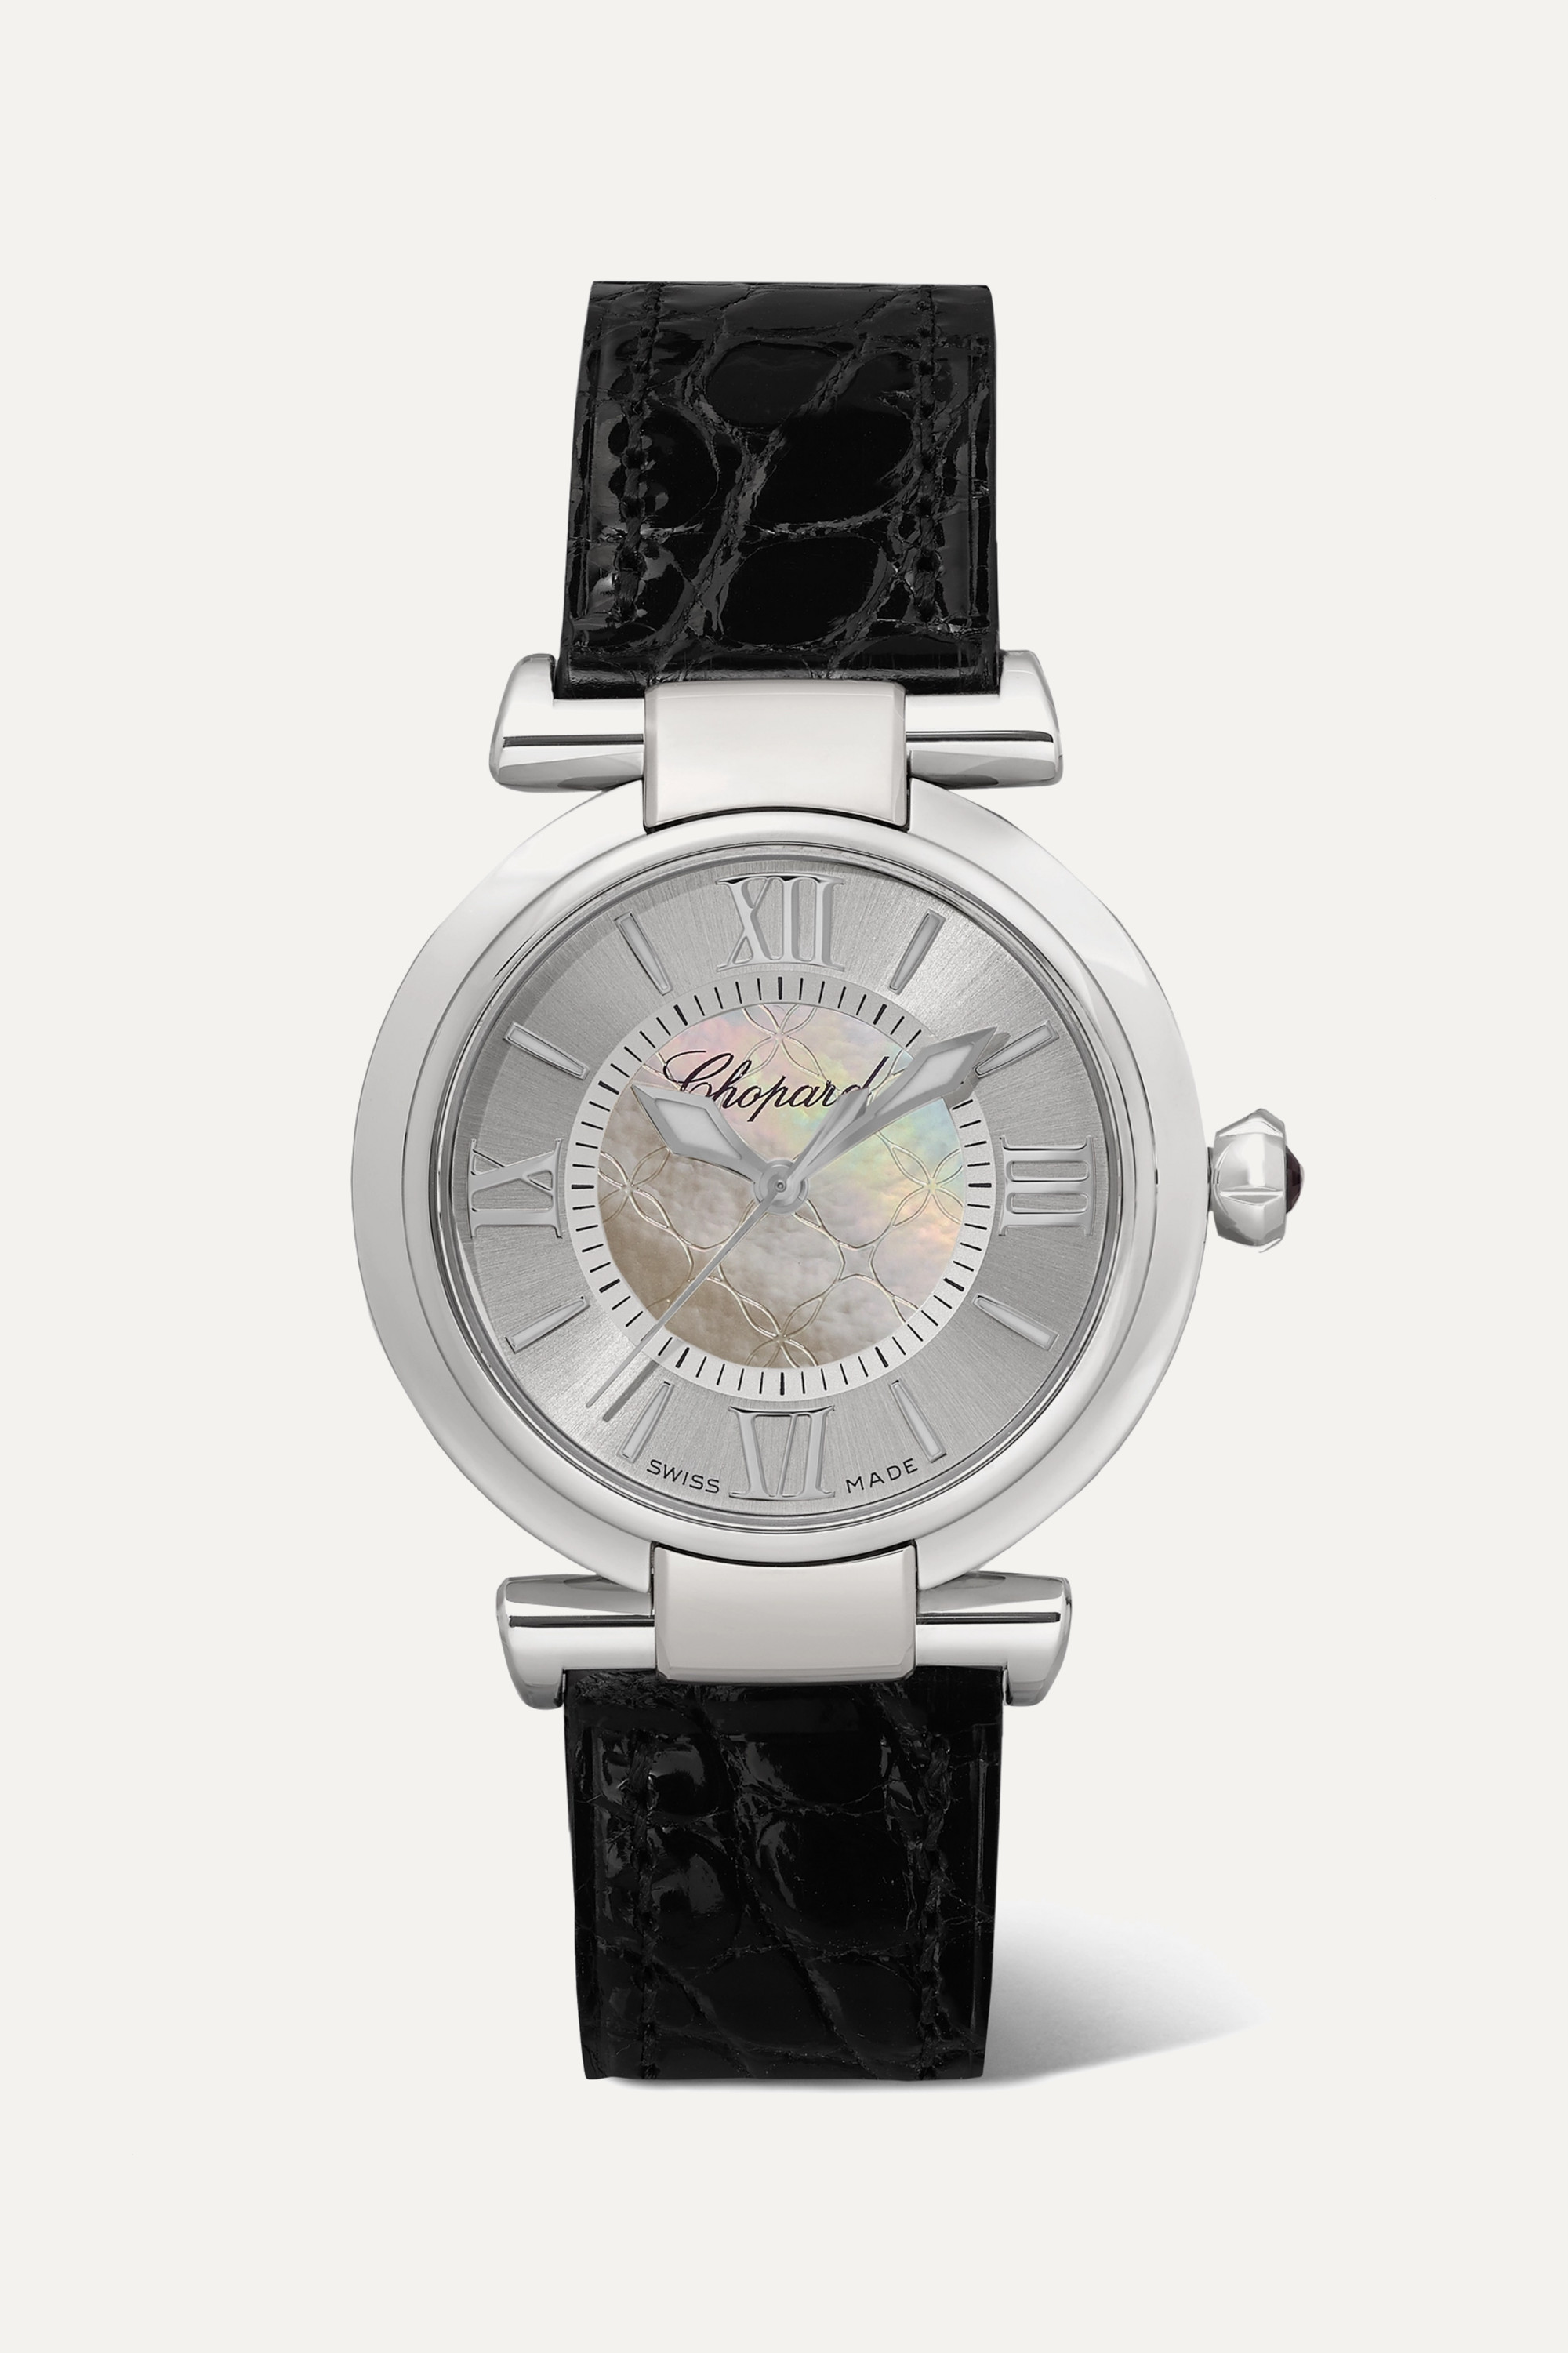 Chopard Imperiale Automatic 29mm stainless steel, alligator and mother-of-pearl watch